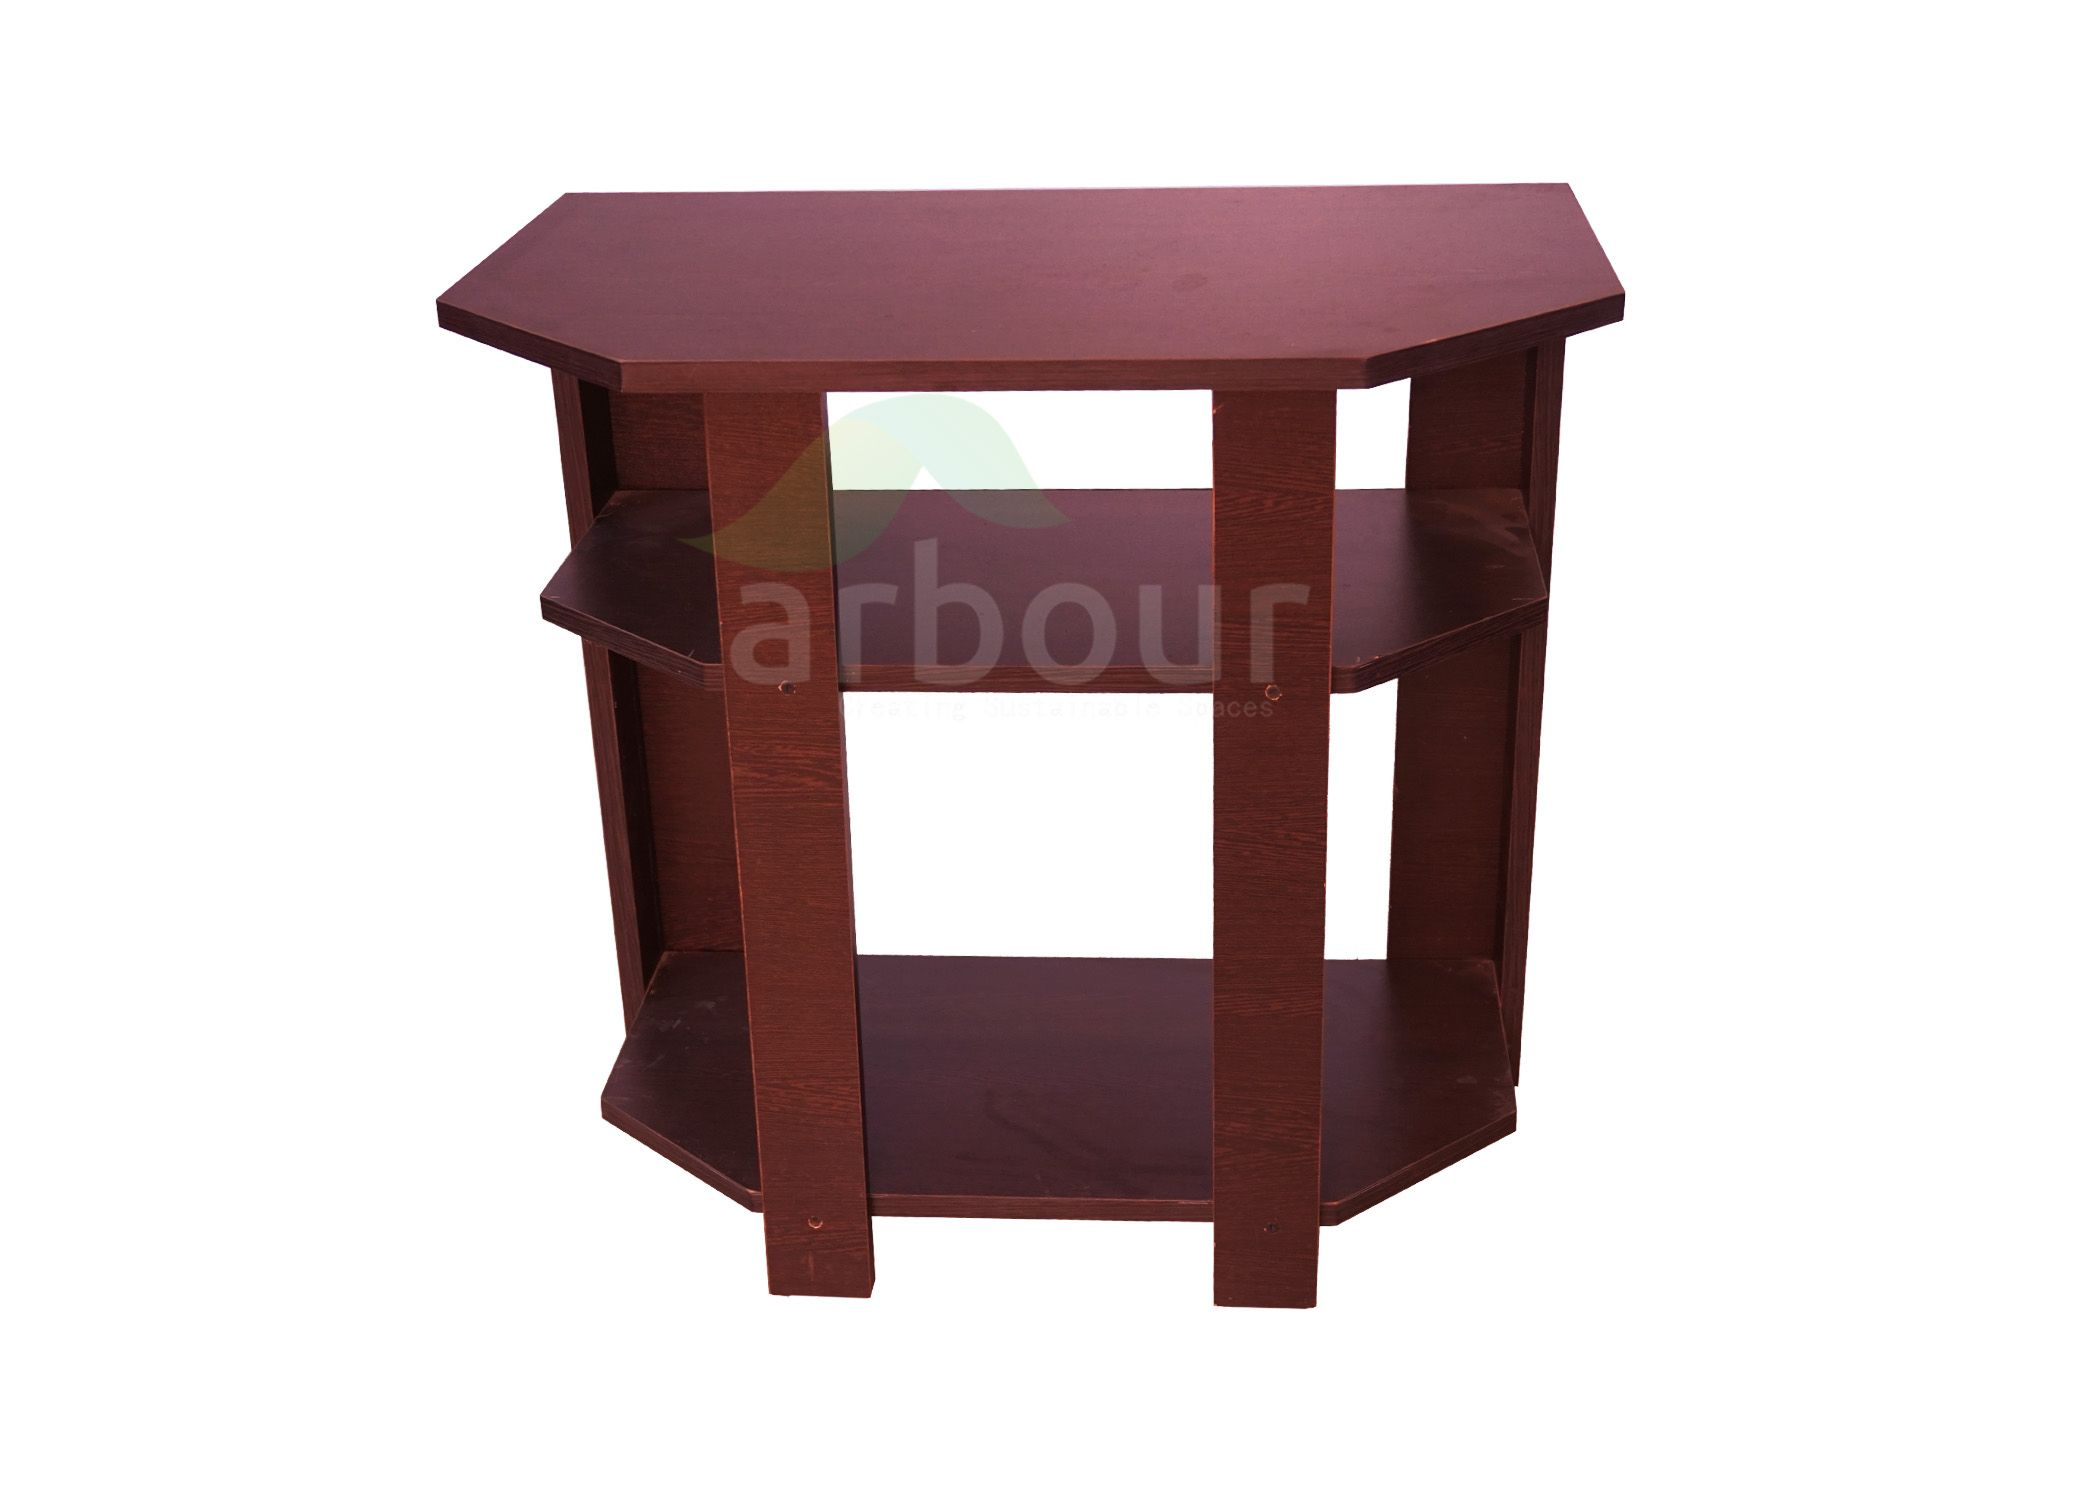 Arbour quality tv stand manufacturer in bangalore we sell